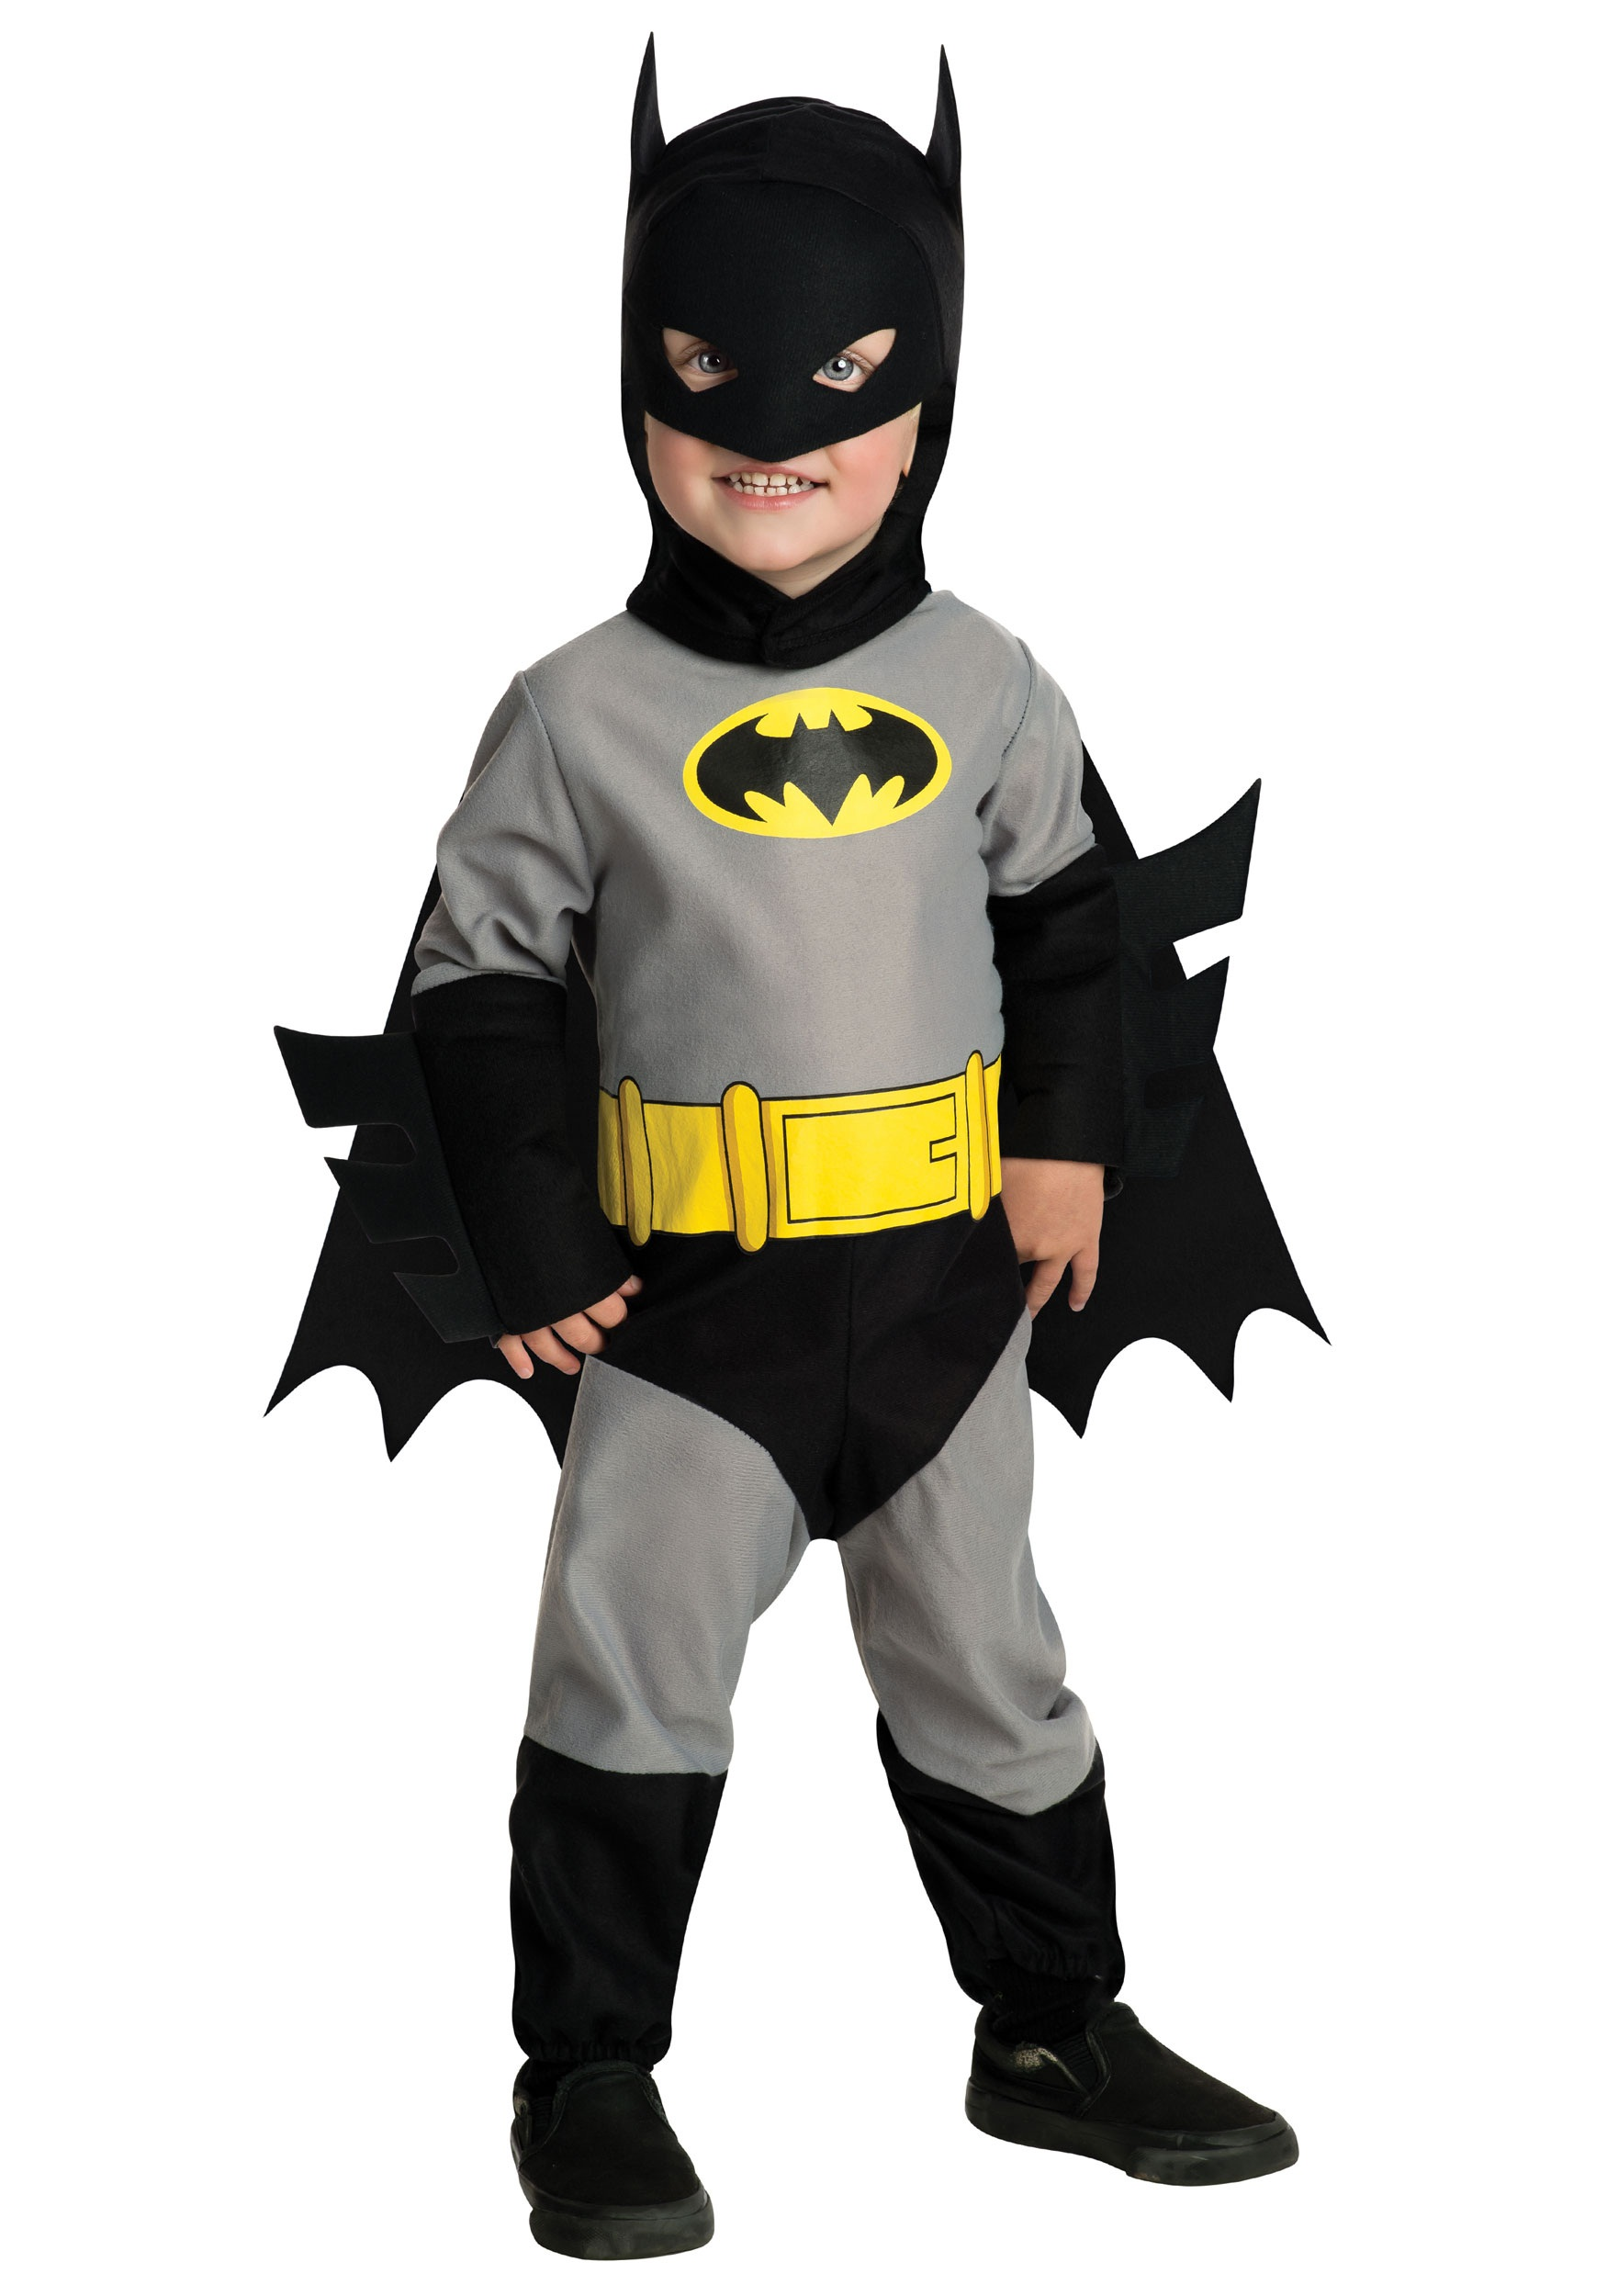 Kids Batman Costumes - Child, Toddler, Boys Batman Halloween Costumes